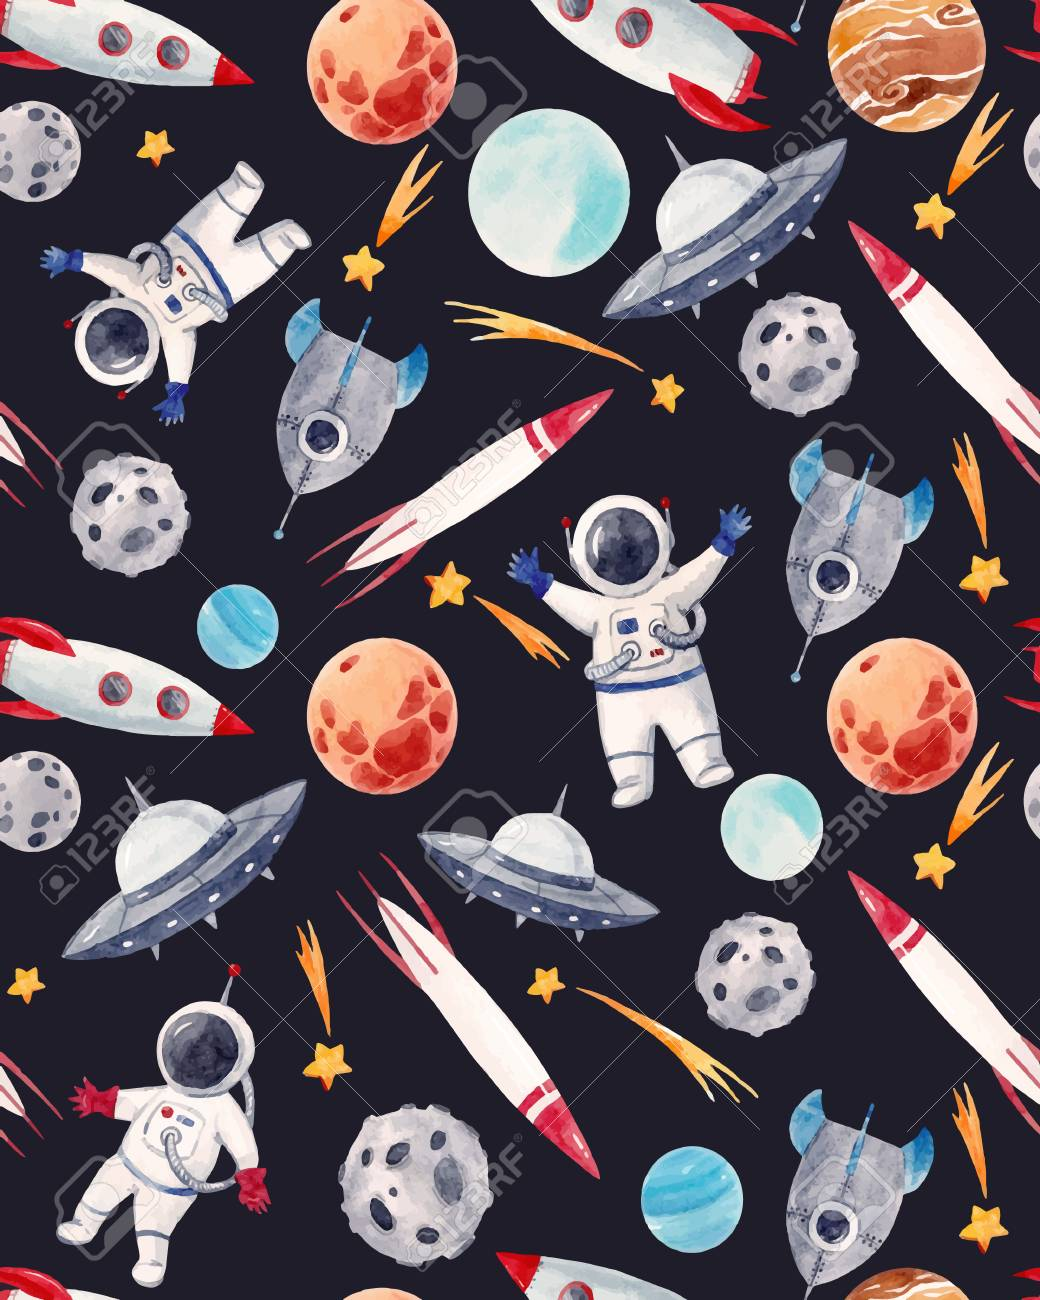 Watercolor space baby vector pattern - 96152410